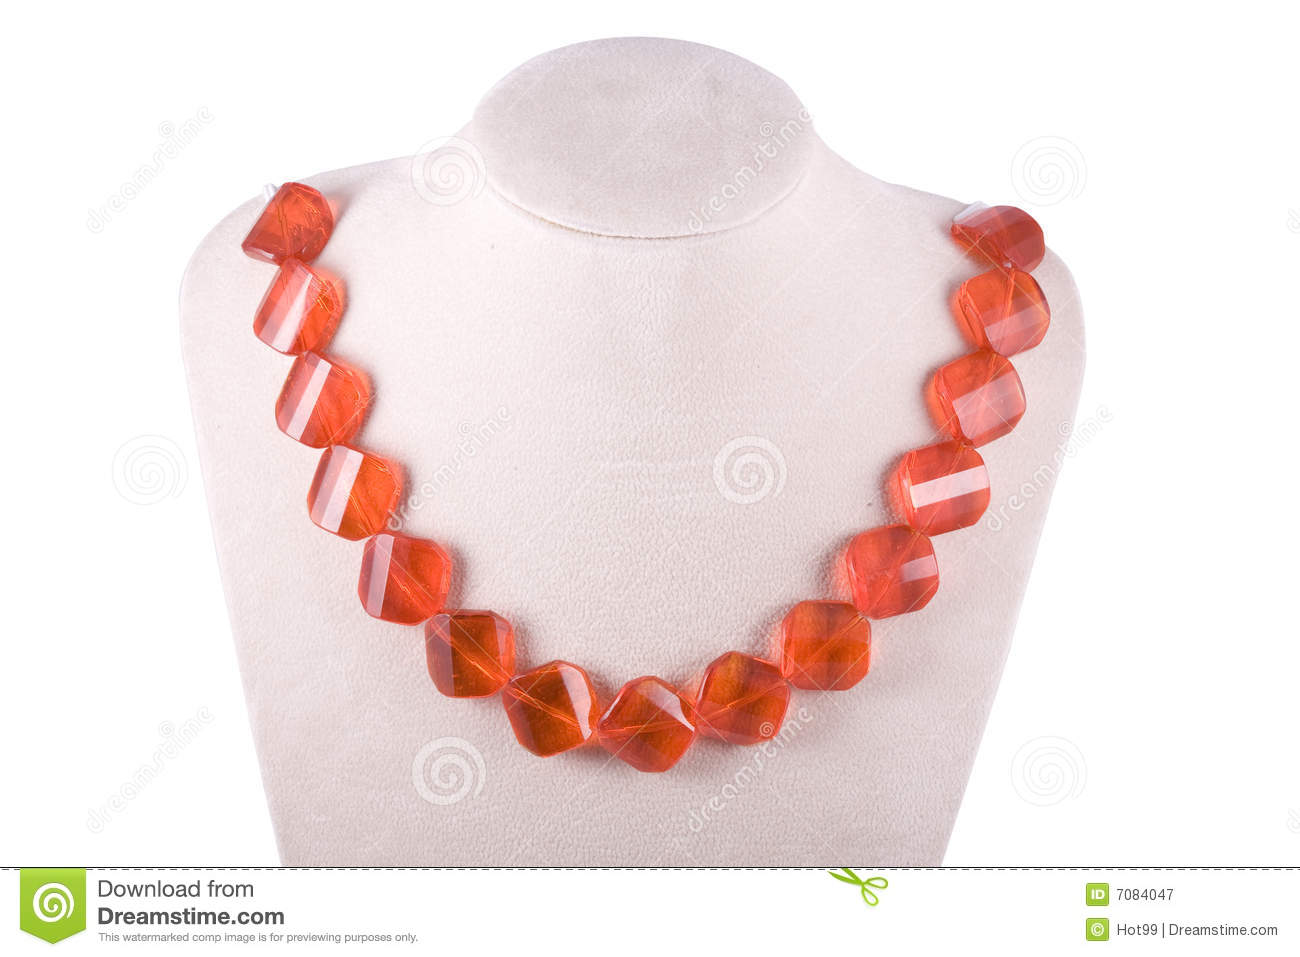 Necklace of rubasse